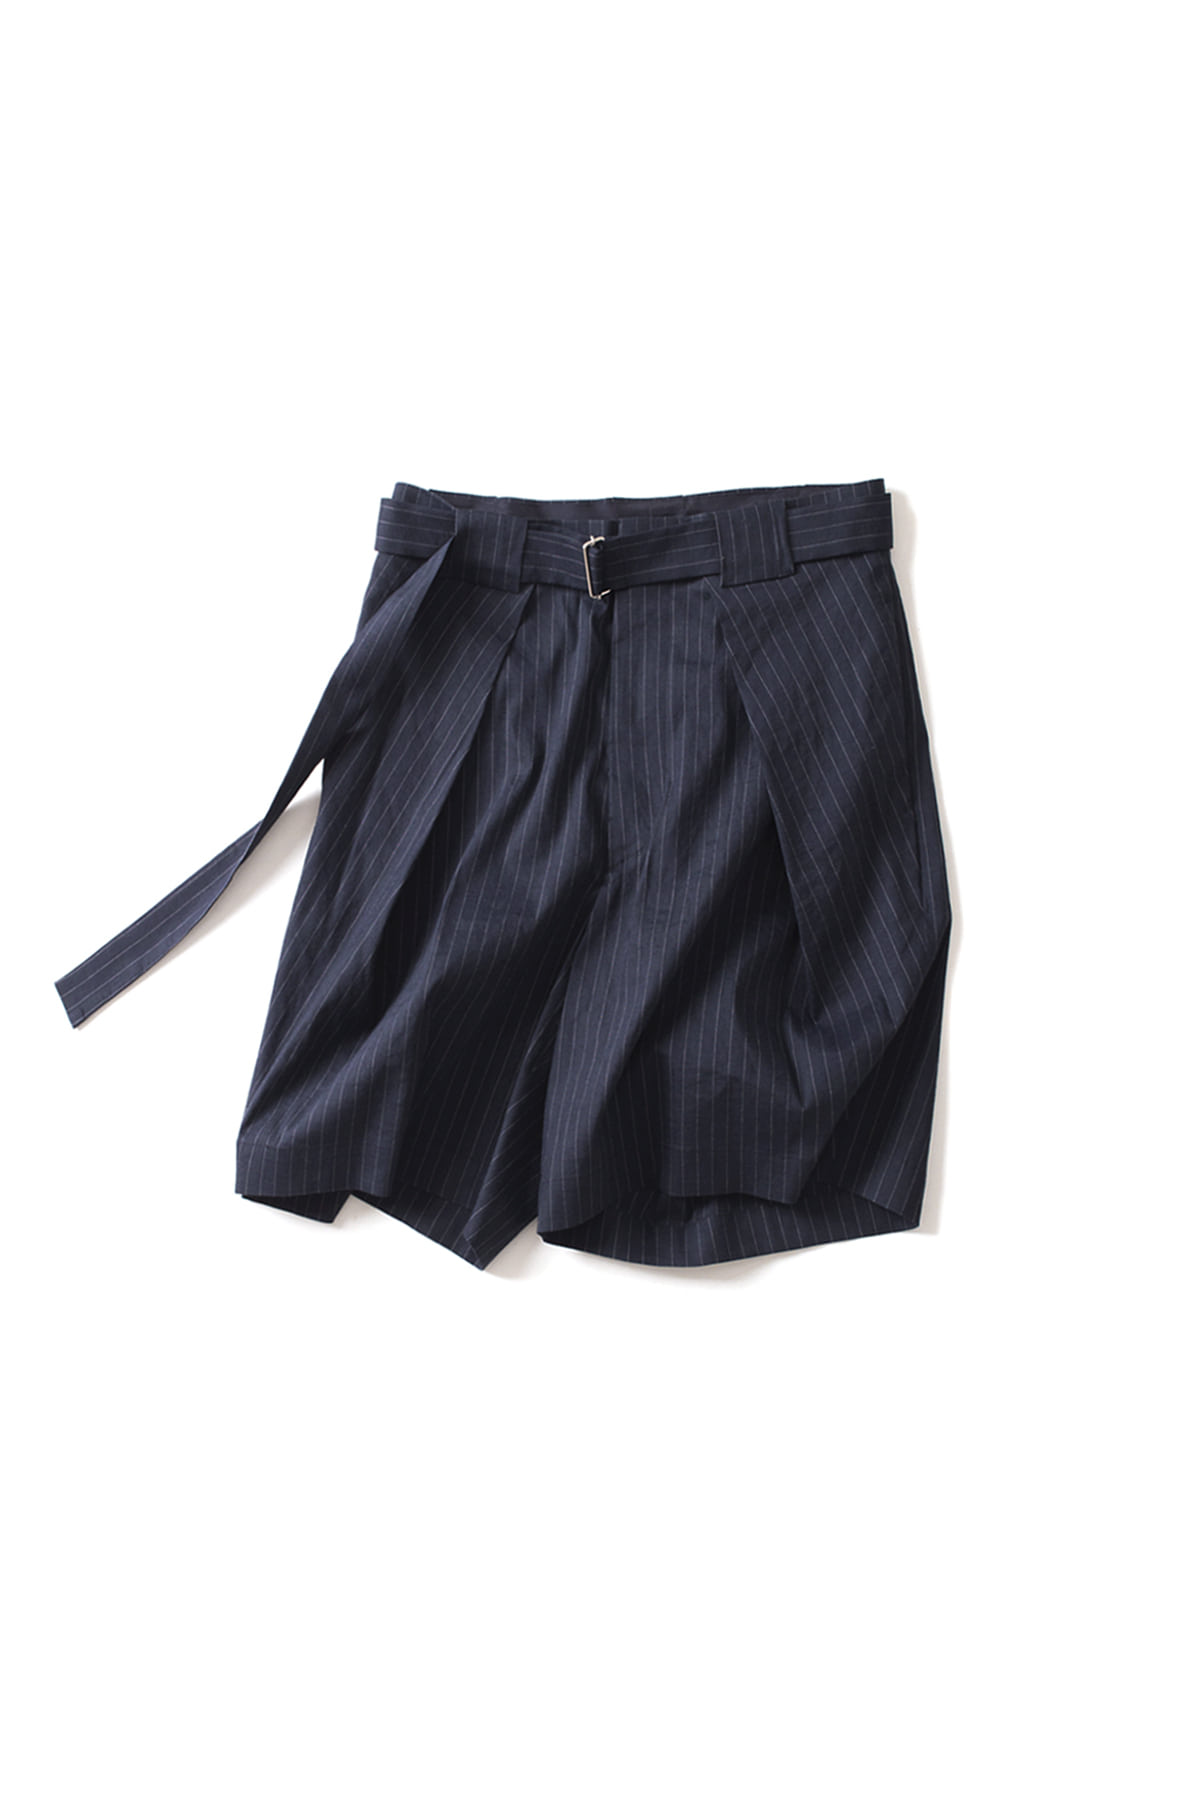 soe : Striped Belted Short Pants (Navy)